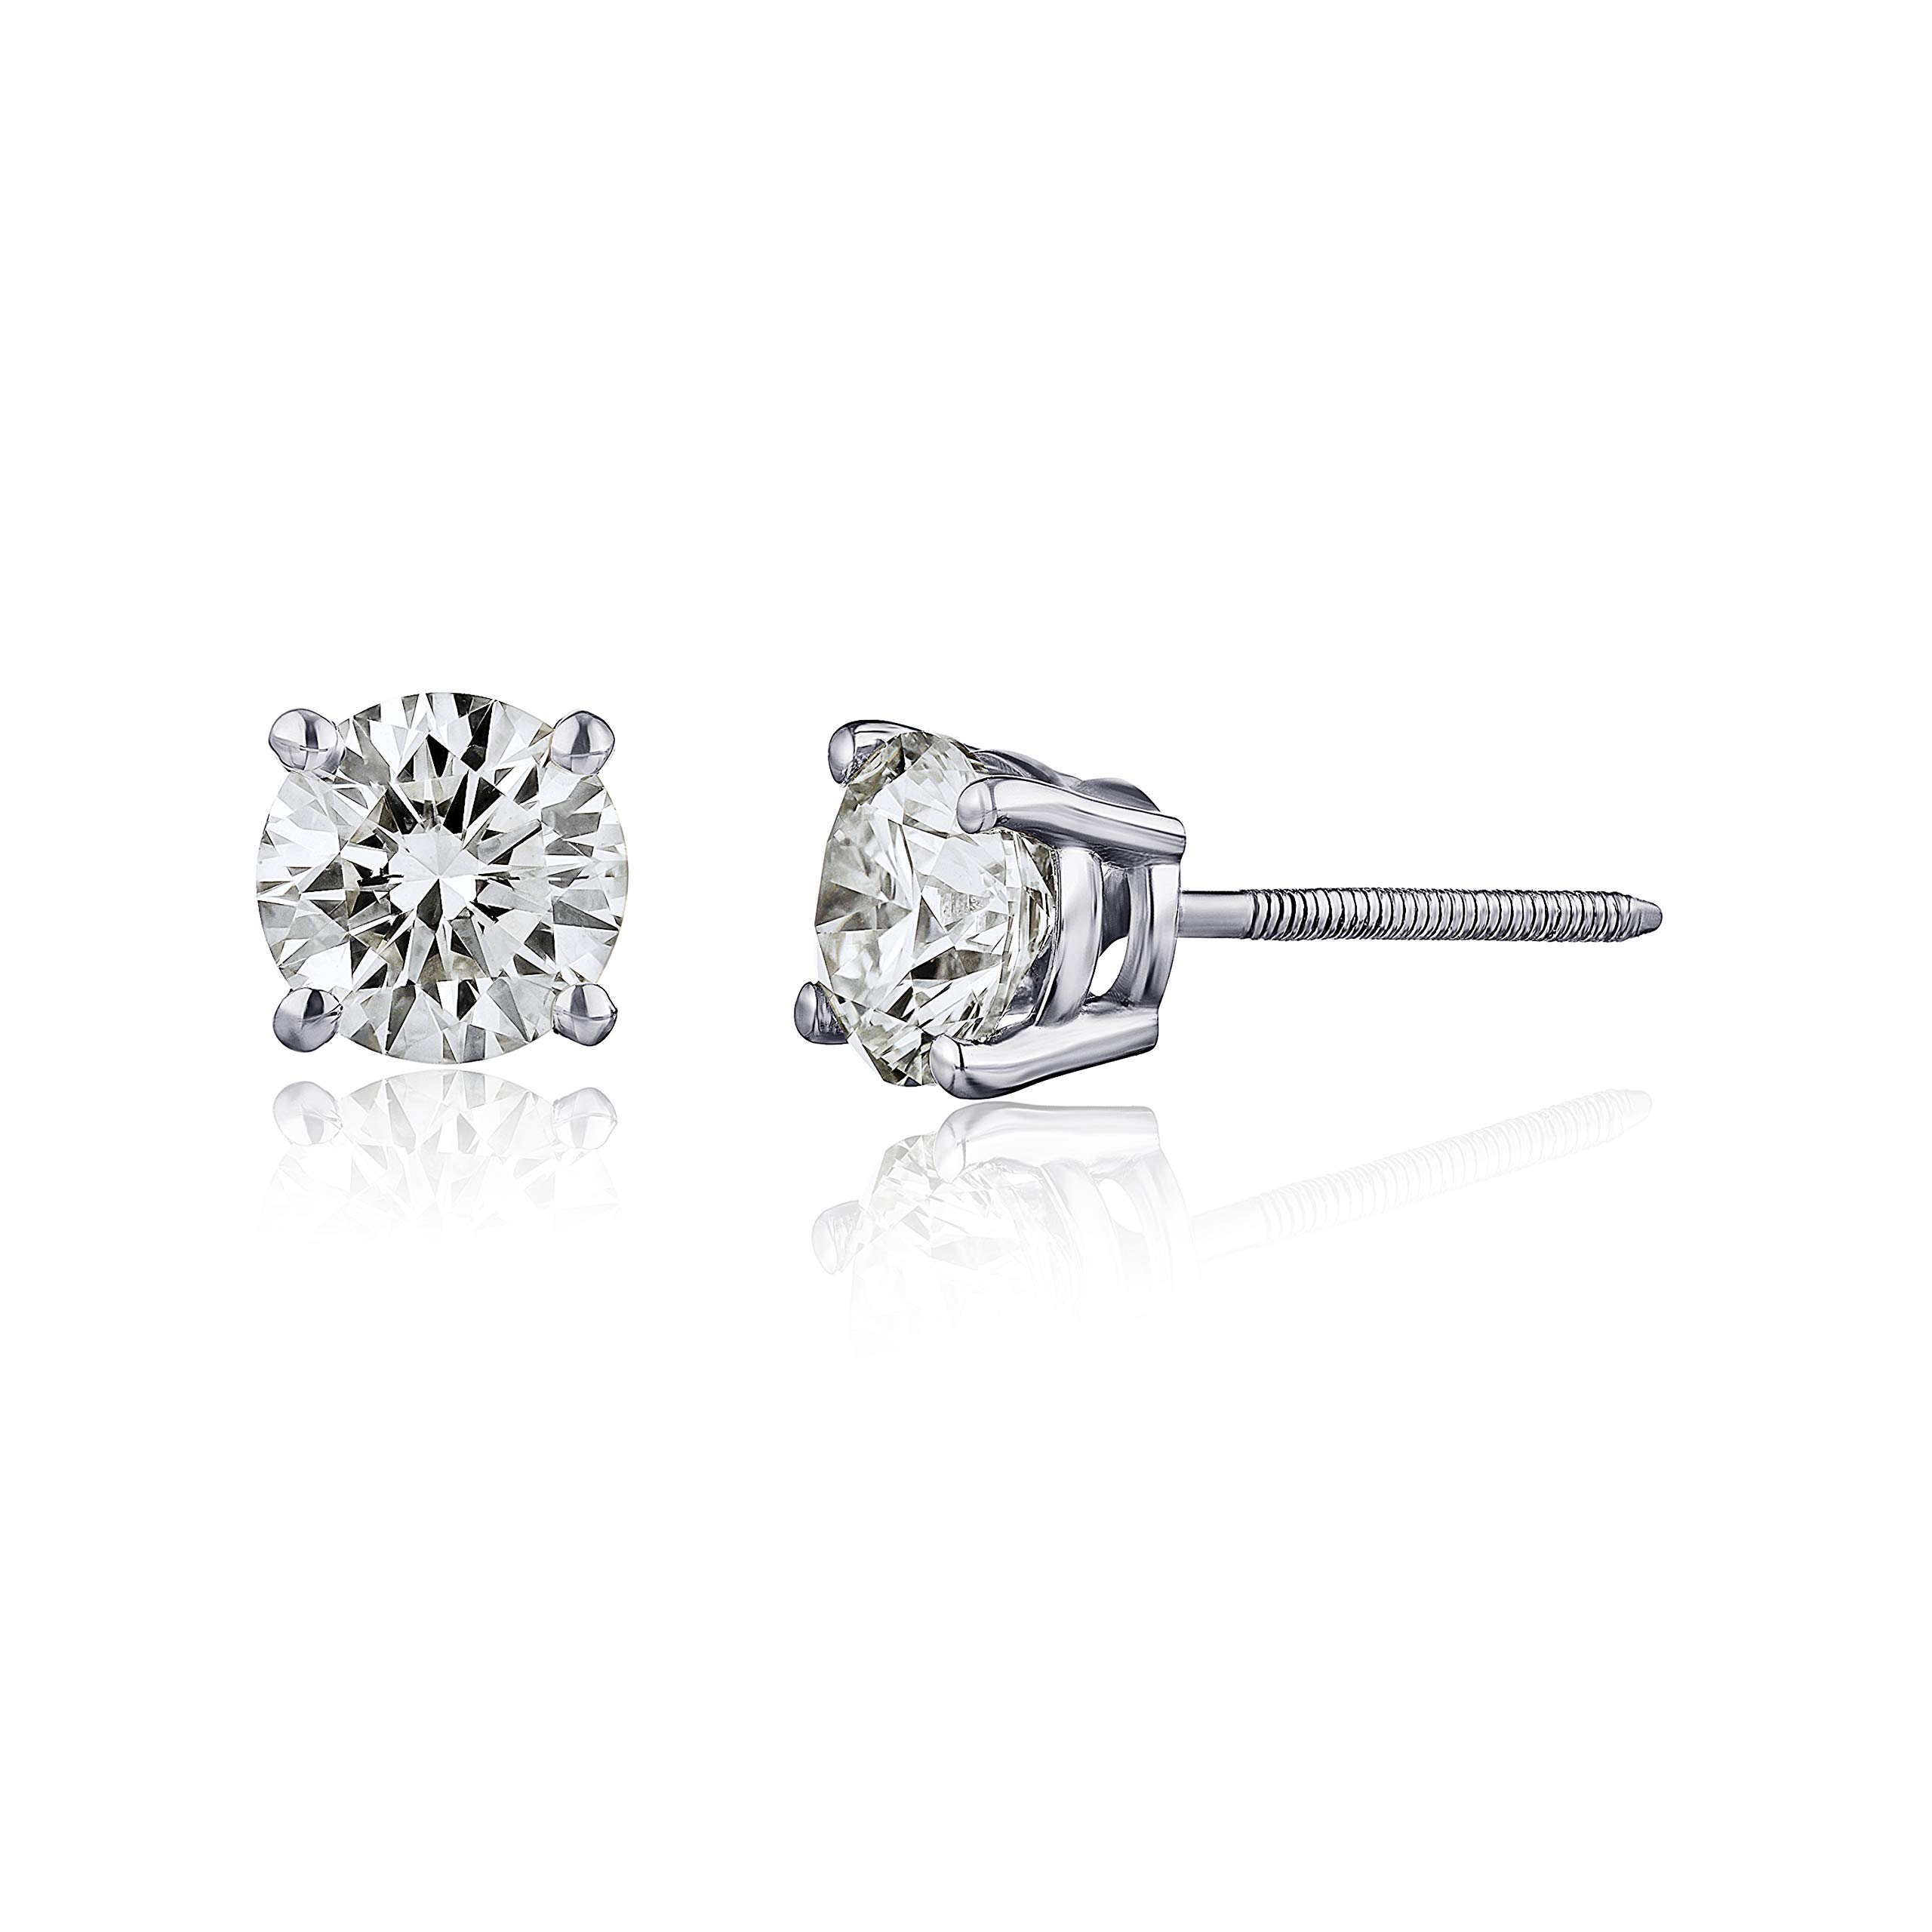 AGS Certified Diamond Earrings For Women in 14K Gold with Screw Back and Post Studs (I1-I2 Clarity), Choice of Carat Weights